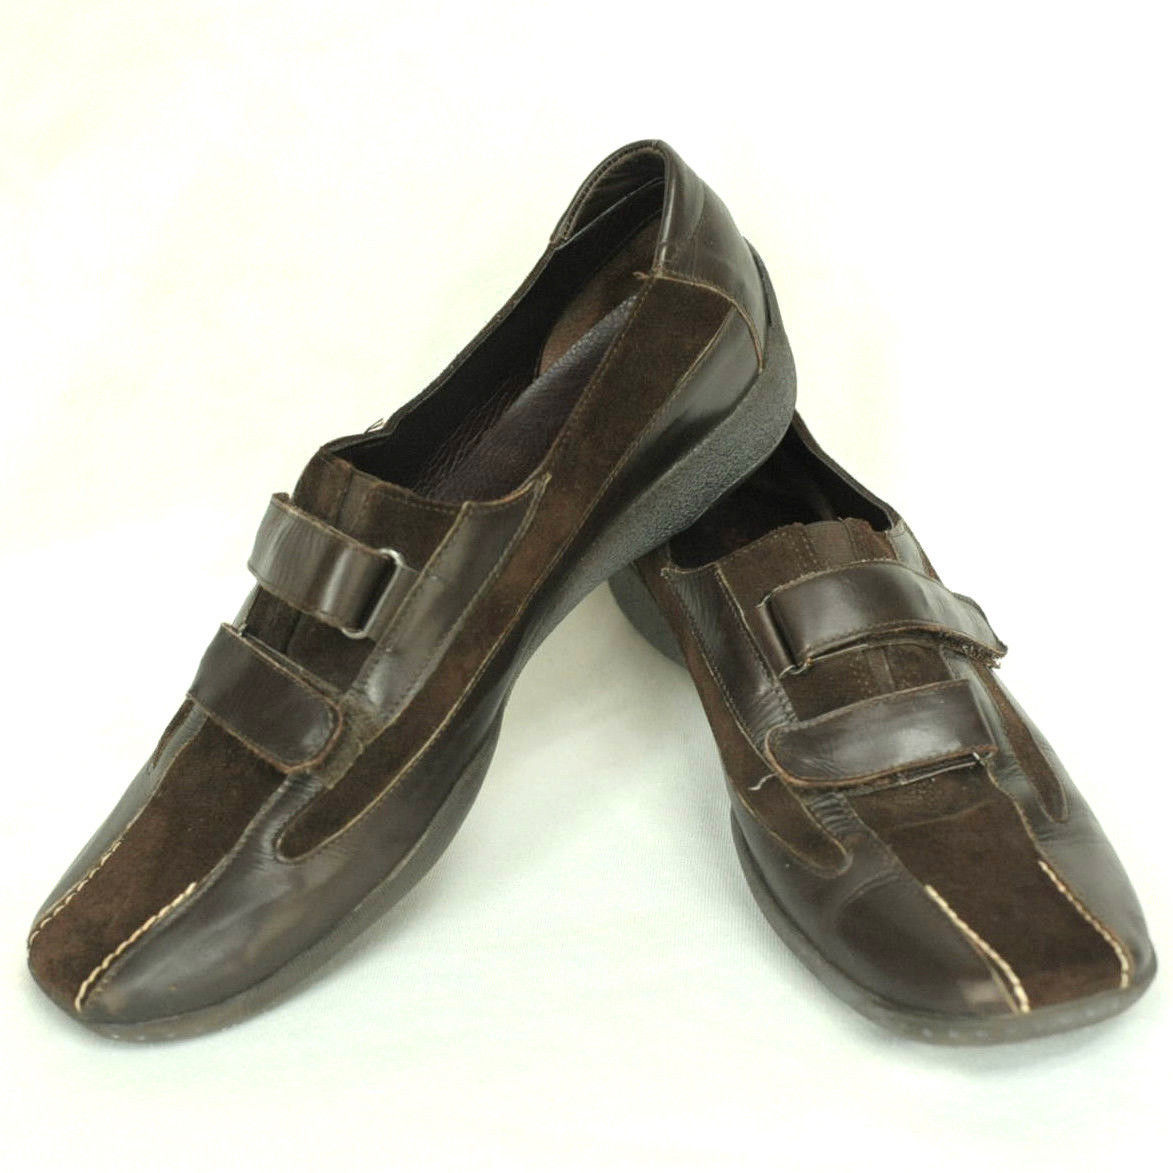 afd31d1a112 Sesto Meucci Women s 8.5 M Dark Brown Leather Suede Slip On Comfort Loafer